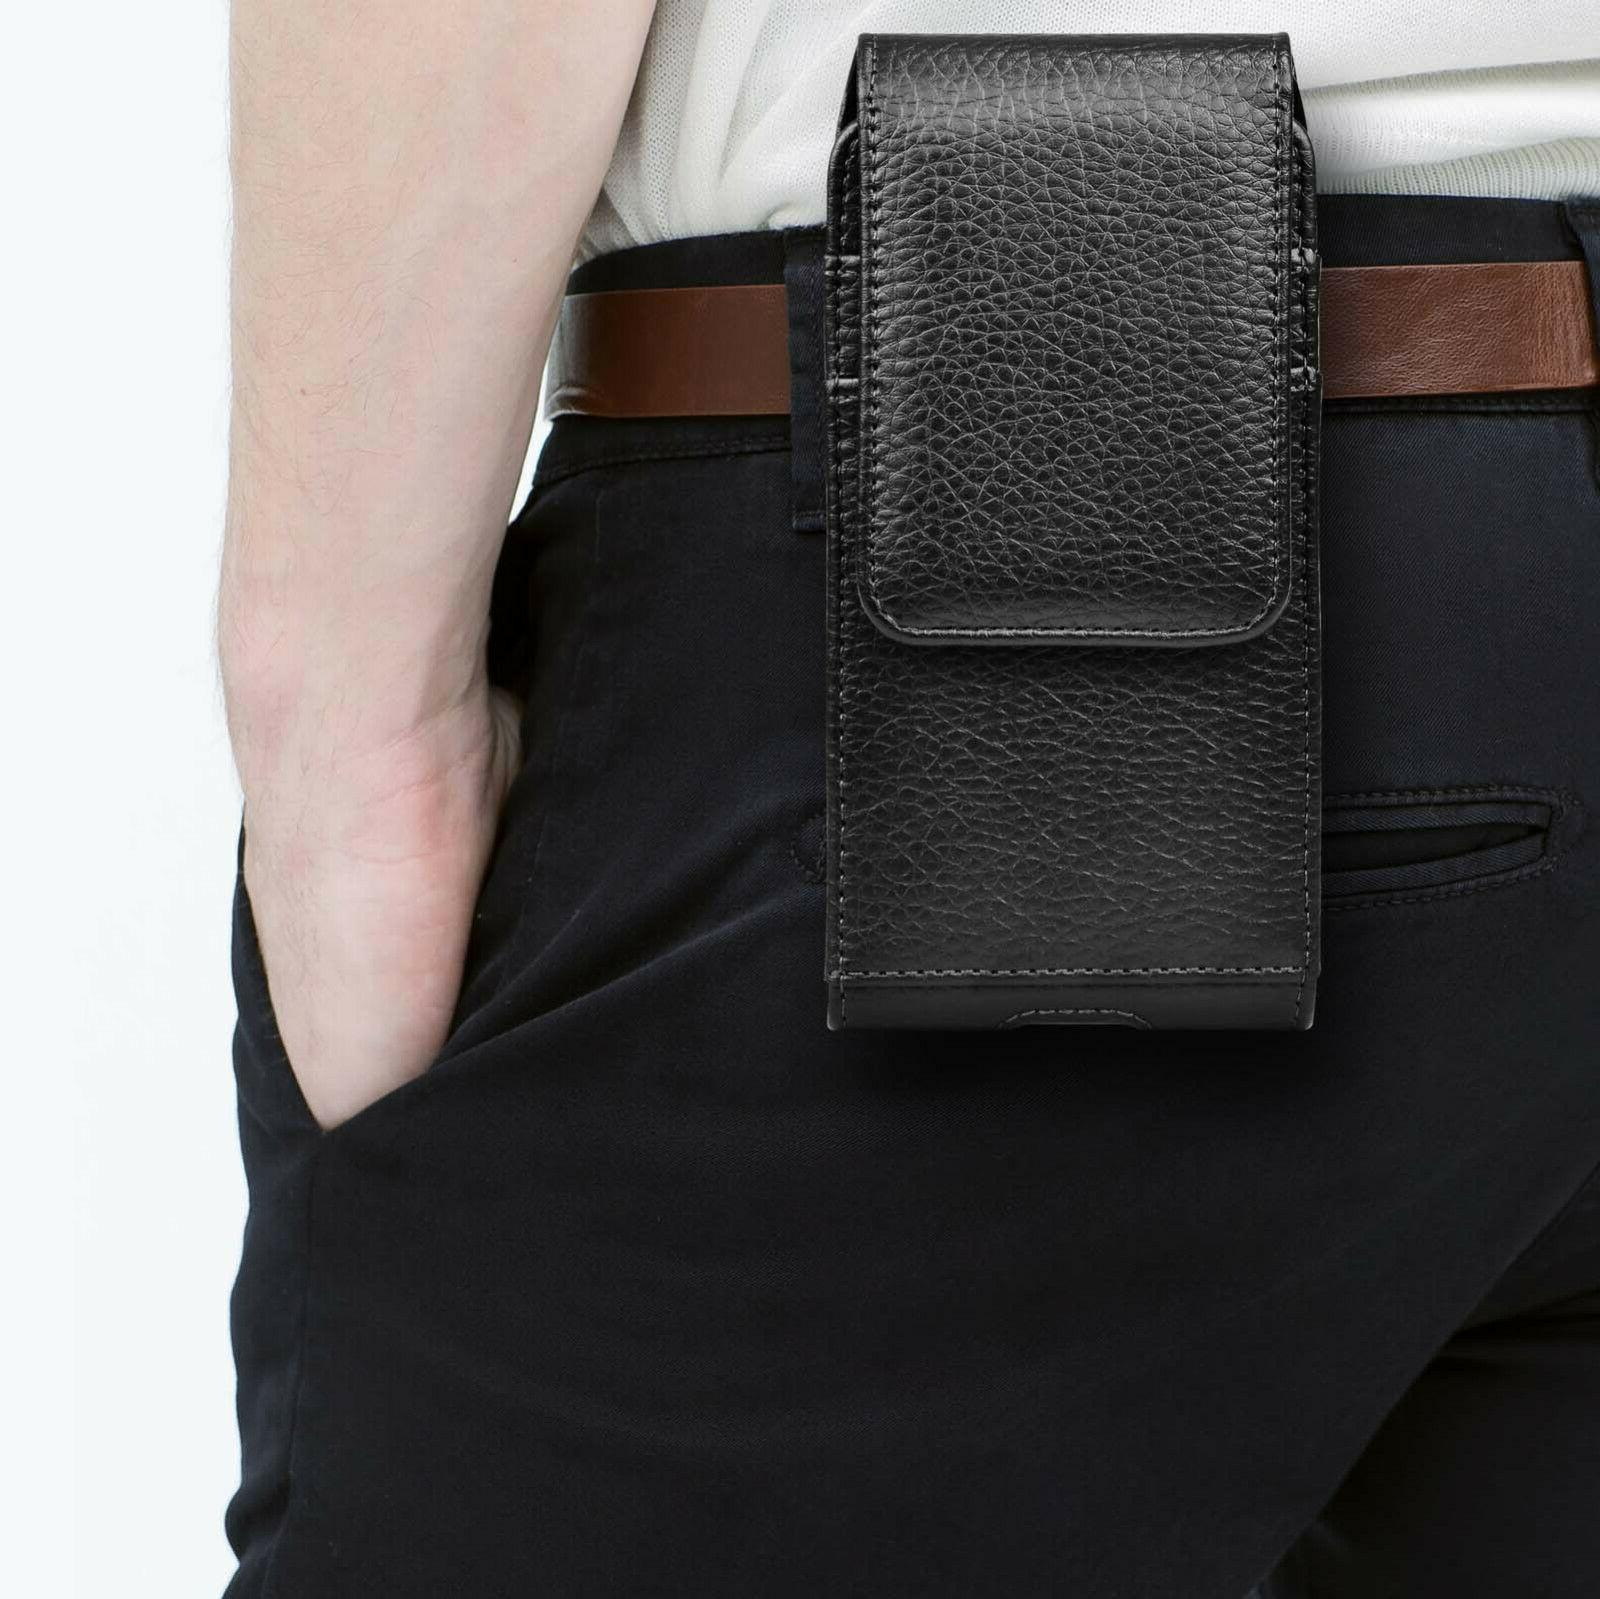 Wallet Holster With Holder Cove